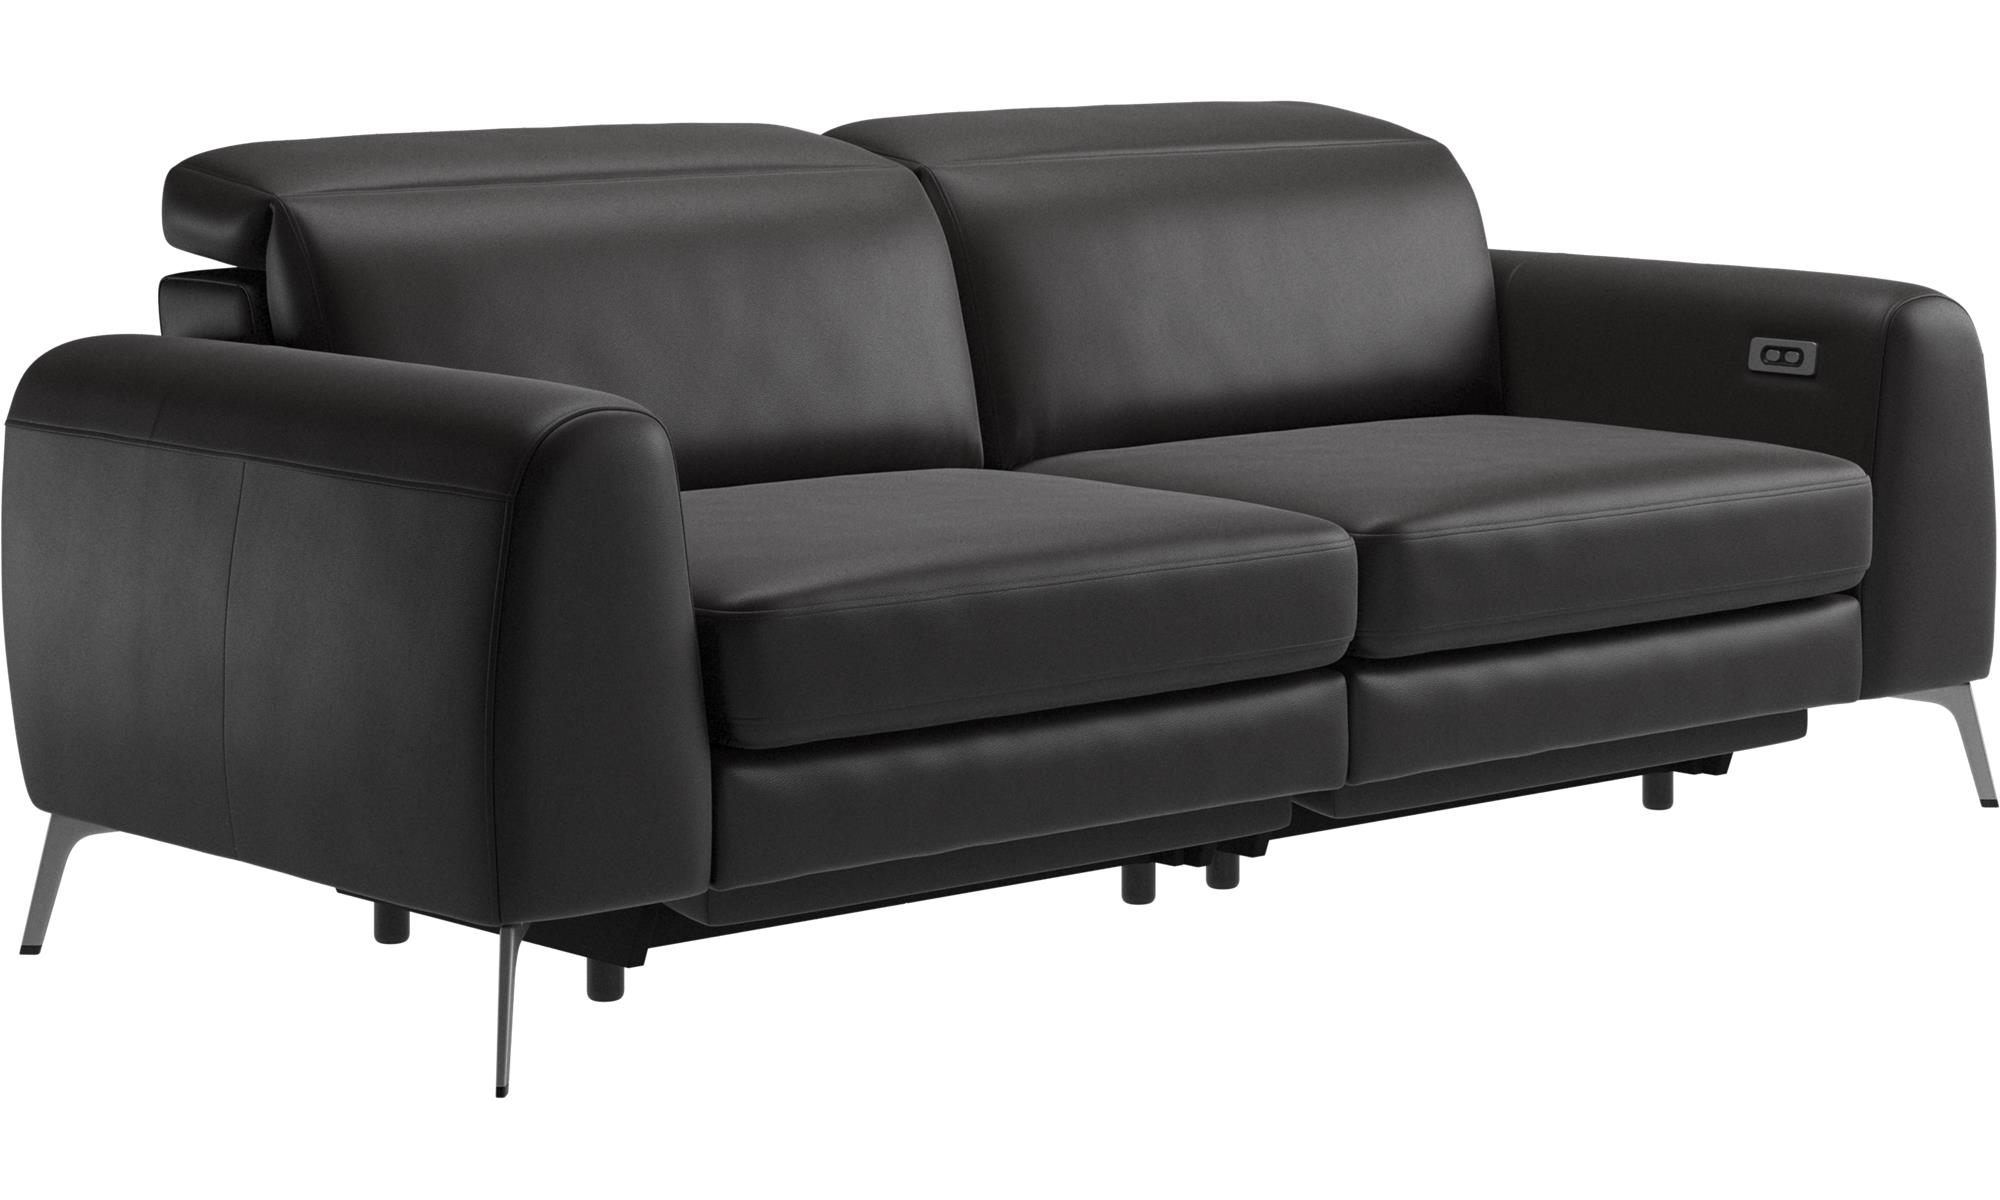 3 Seater Sofas Madison Sofa With Electric Seat Head And Footrest Motion Transformer